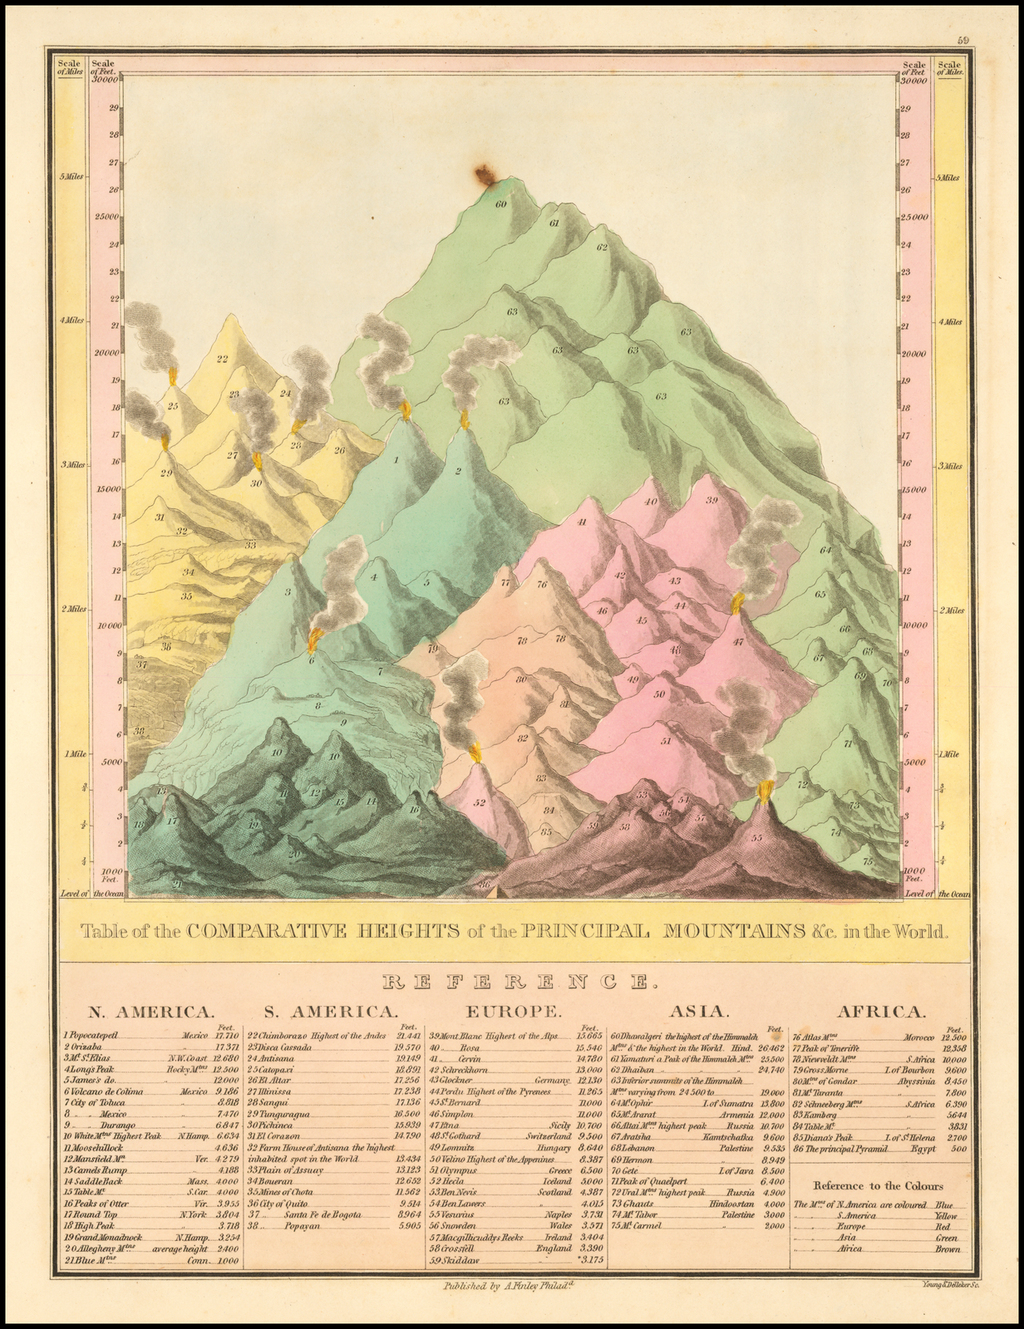 Table of the Comparative Heights of the Principal Mountains &c in the World By Anthony Finley